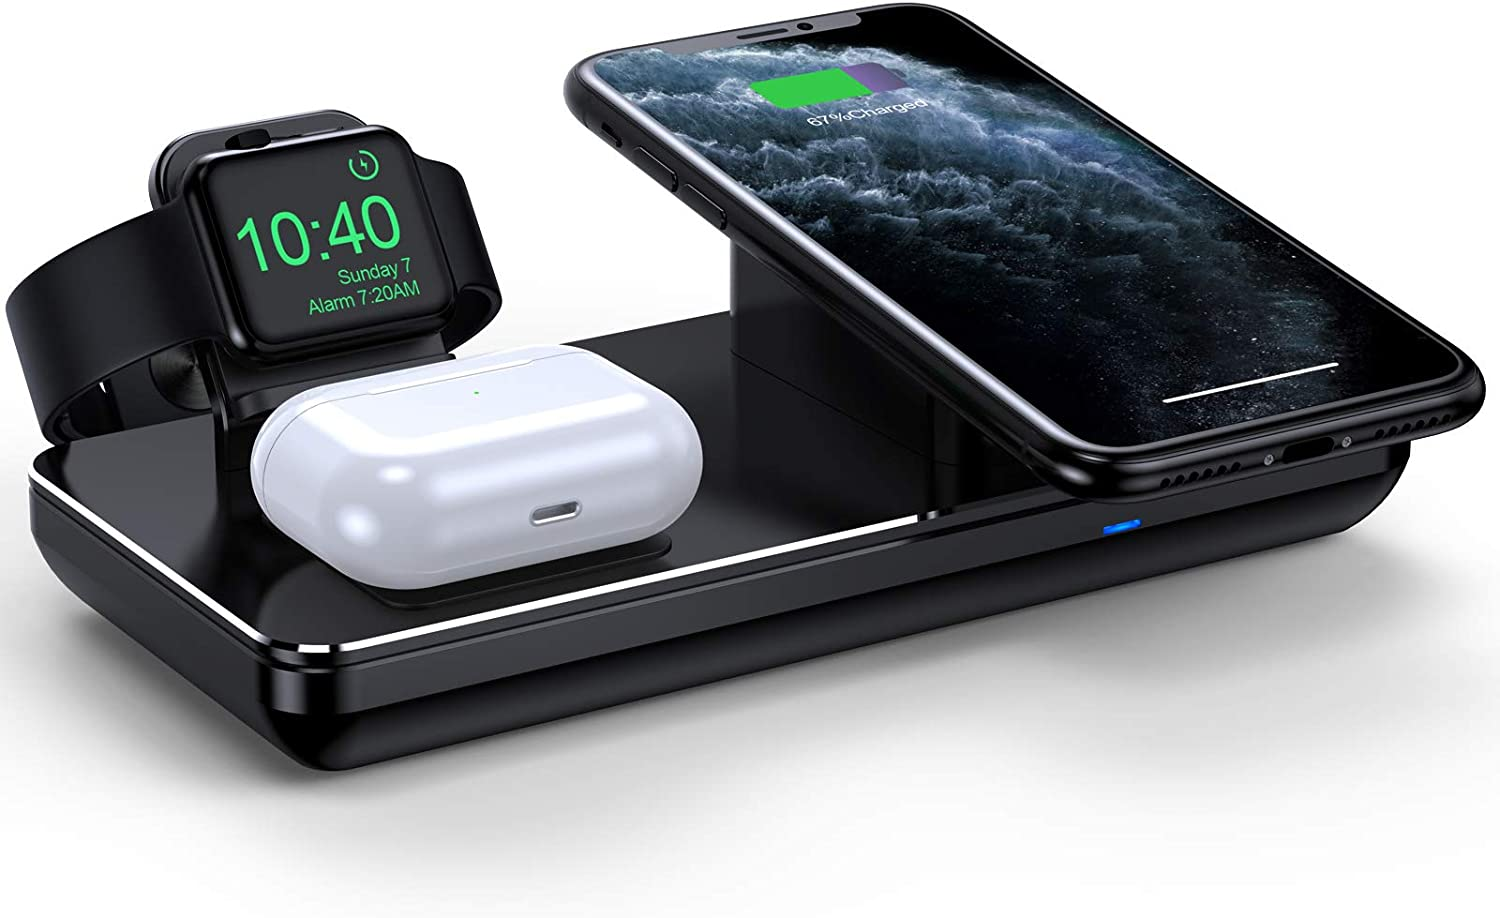 Wireless Charging Station for Apple Watch iPhone & AirPods Pro, Wireless Charger for iPhone 12/12 Pro/ 11/11 Pro/XR/XS Max/Xs/X/8, iWatch 5/4/3/2/1(Not Included Apple Watch Magnetic Charger)